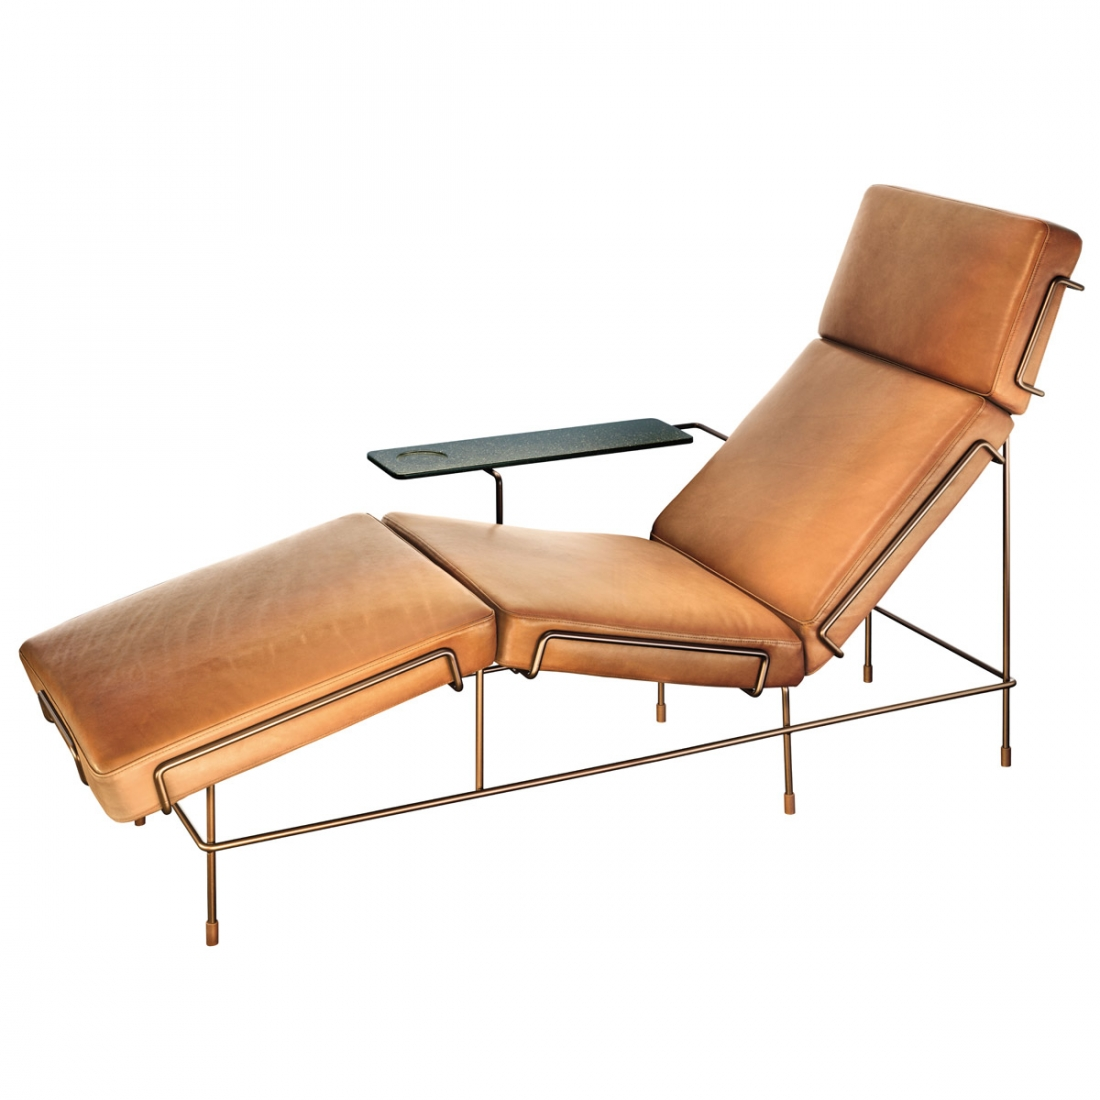 Chaise longue design traffic par magis - Chaise longue interieur ...